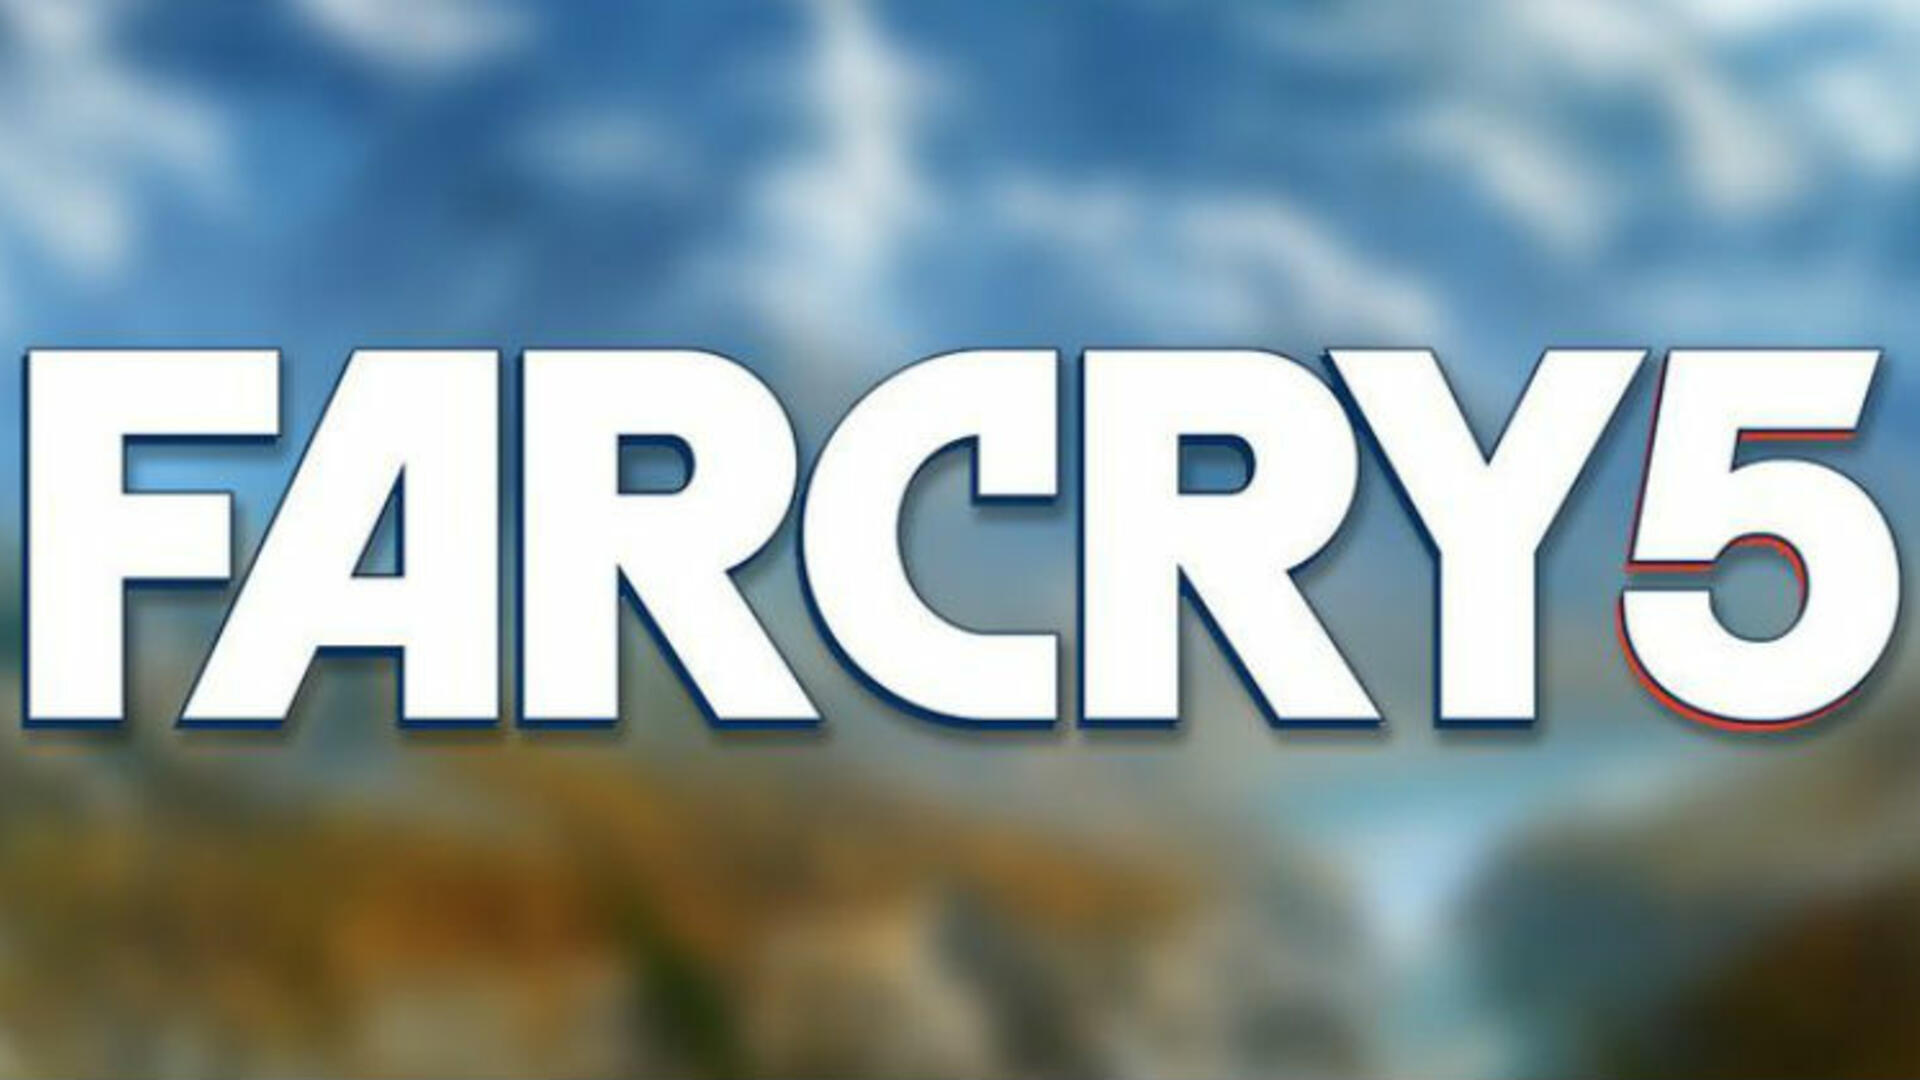 Major Far Cry 5 Details Appear to Have Been Leaked On Reddit